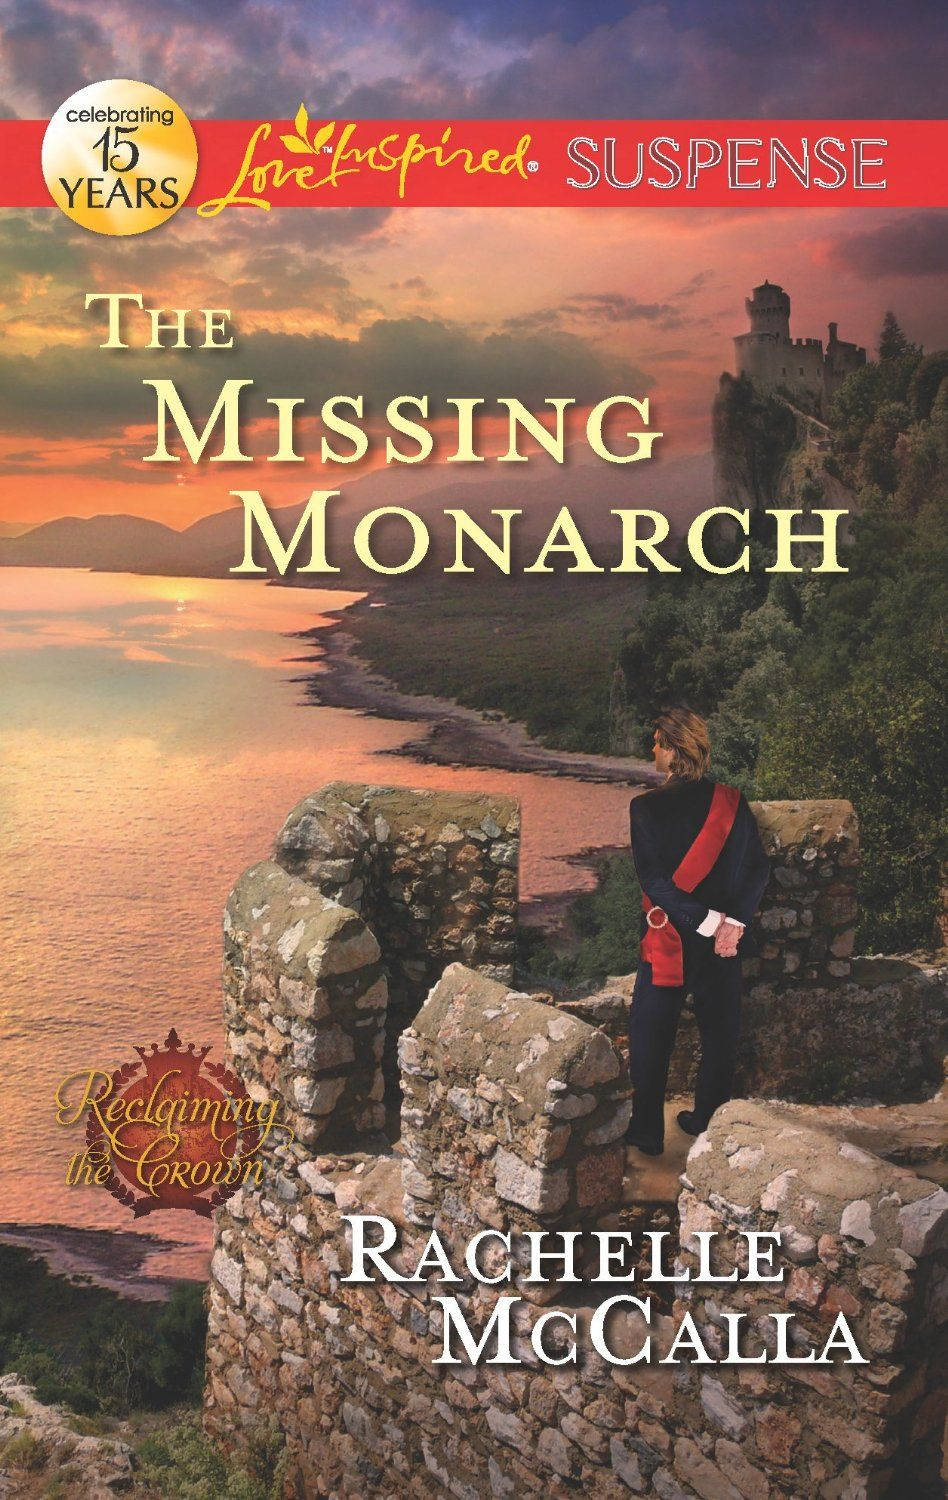 Rachelle mccalla the missing monarch httpamazon the missing monarch is the conclussion of a great adventure suspense and romance series by rachelle mccalla reclaiming the crown fandeluxe Epub